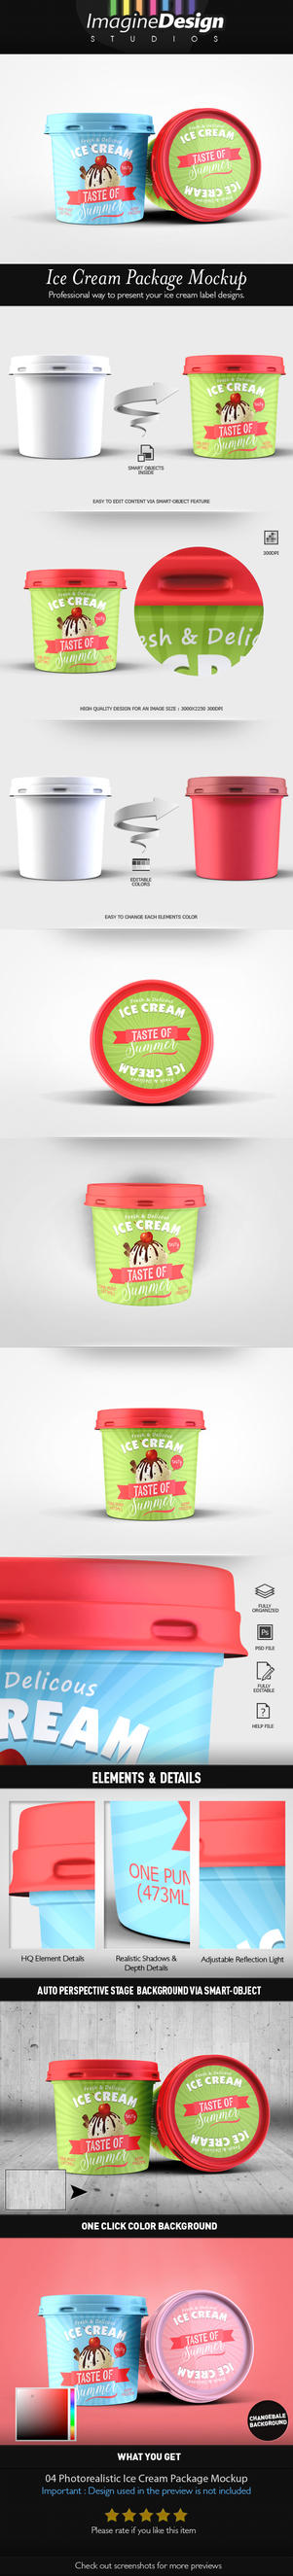 Ice Cream Package Mockup by idesignstudio